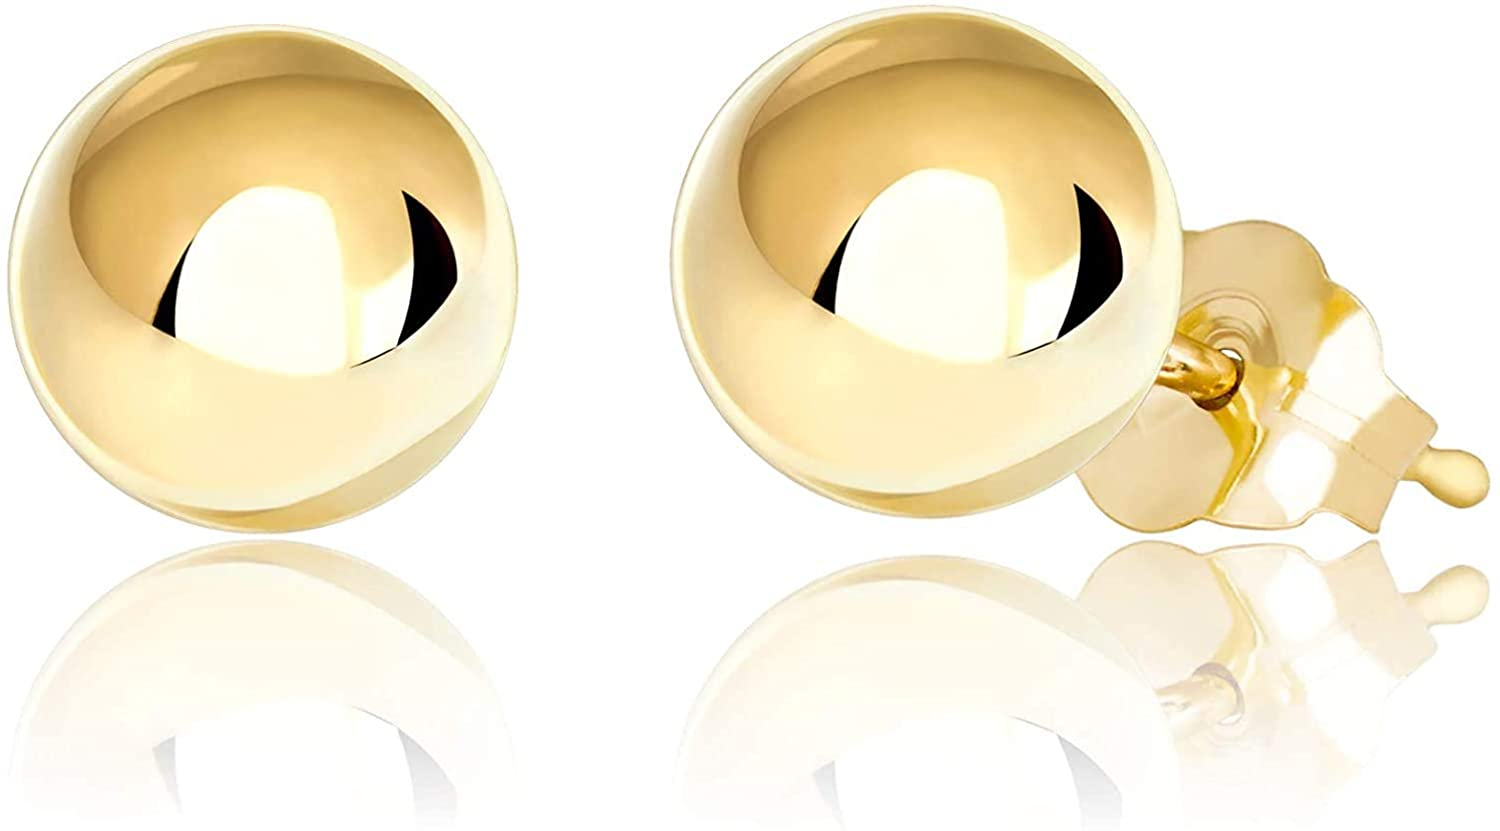 14K Yellow Gold Polished Ball Stud Earrings 3MM - 8MM, Gold Ball Earrings for Women, 14K Gold Earrings, 100% Real 14K Gold. Next Level Jewelry